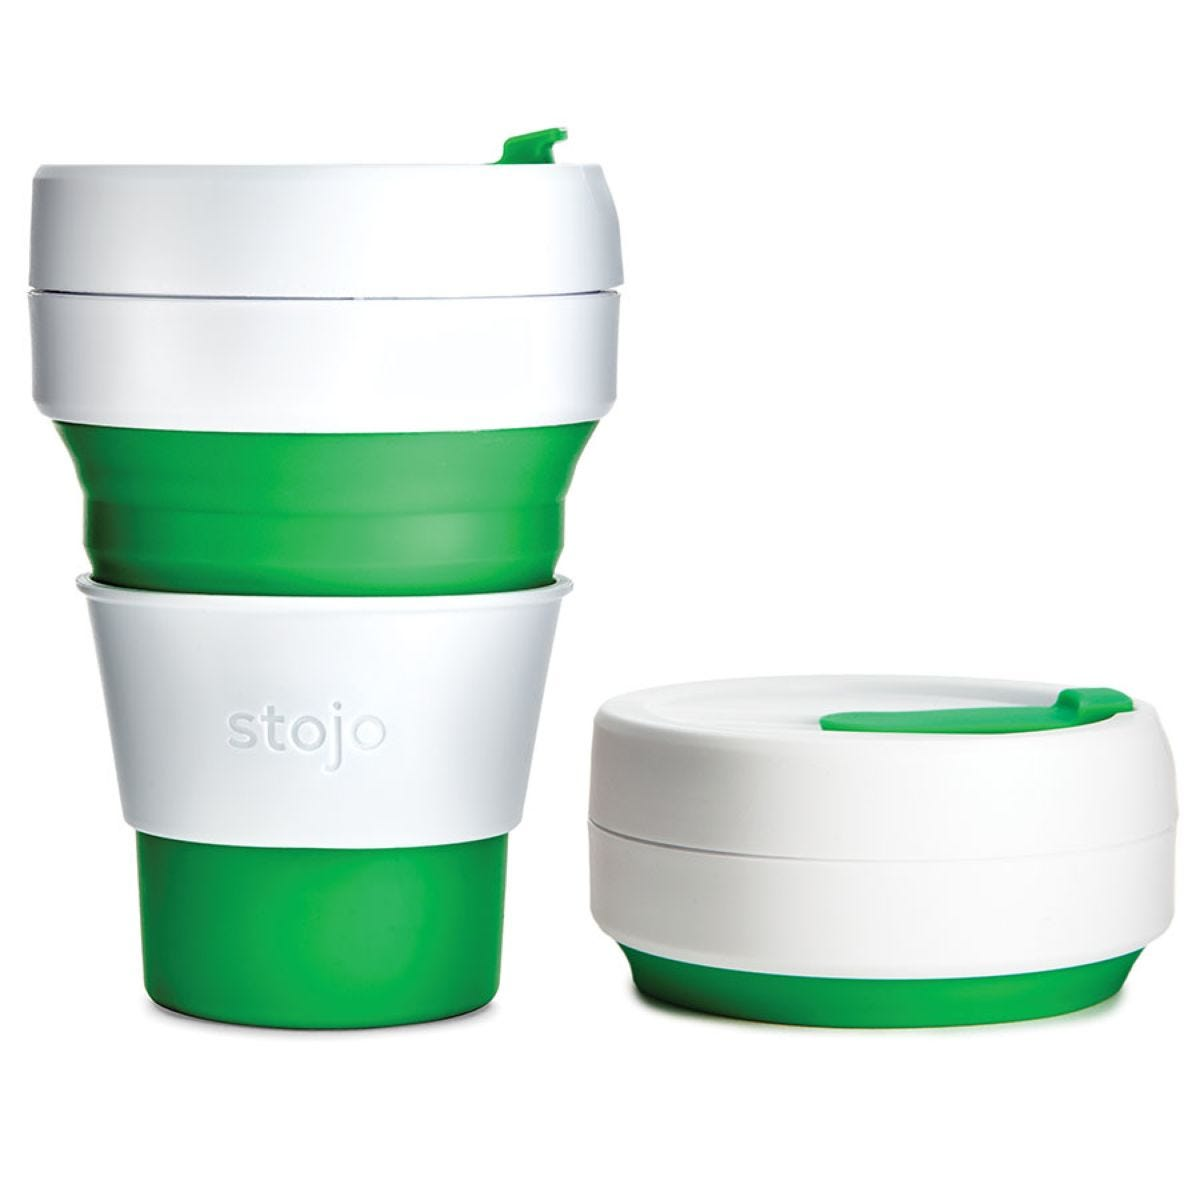 Stojo Collapsible Pocket Cup - Green